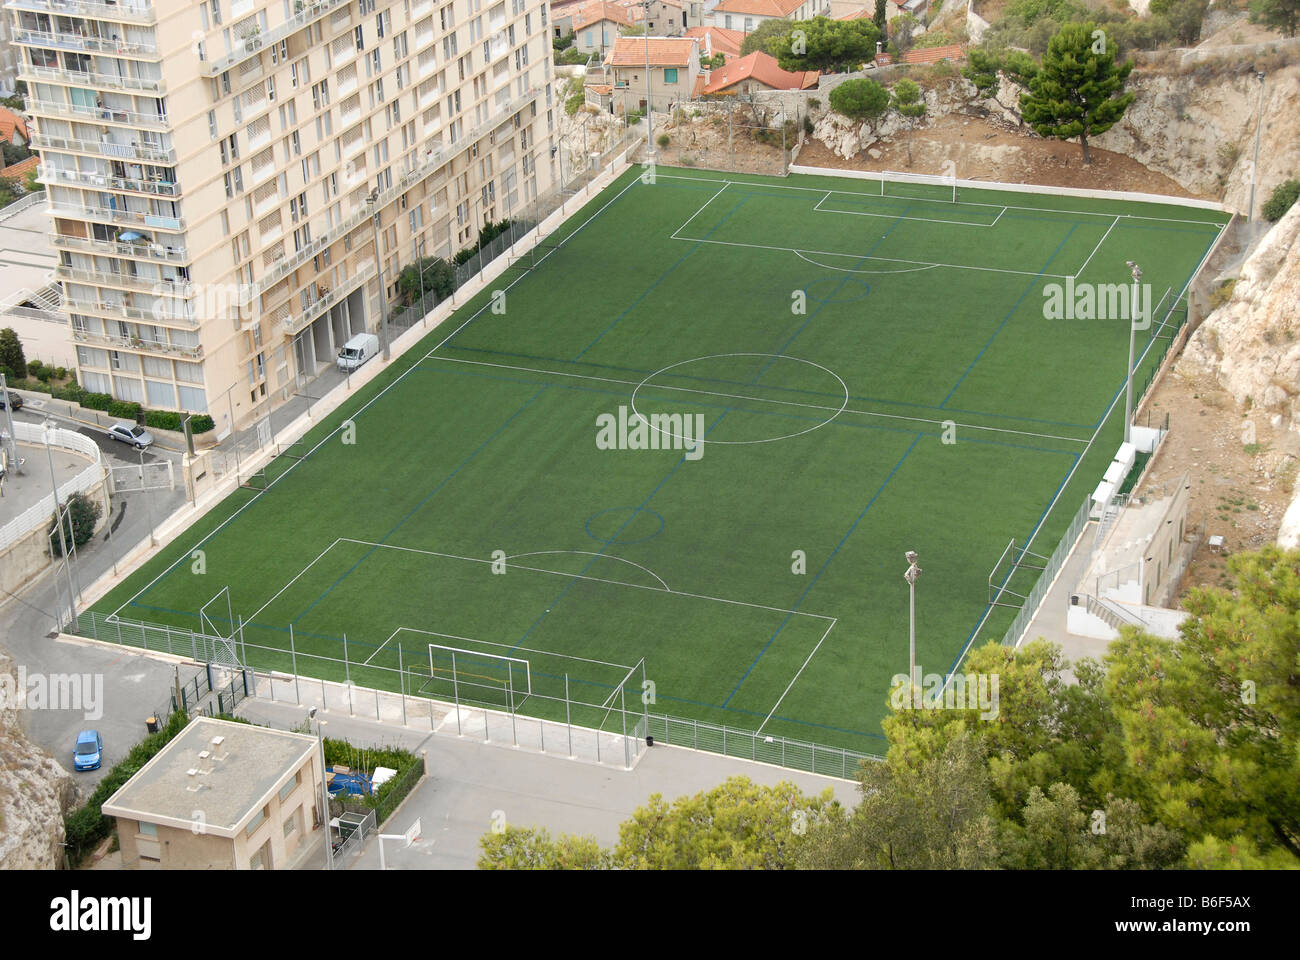 Empty football pitch, aerial view, Marseille, France, Europe - Stock Image